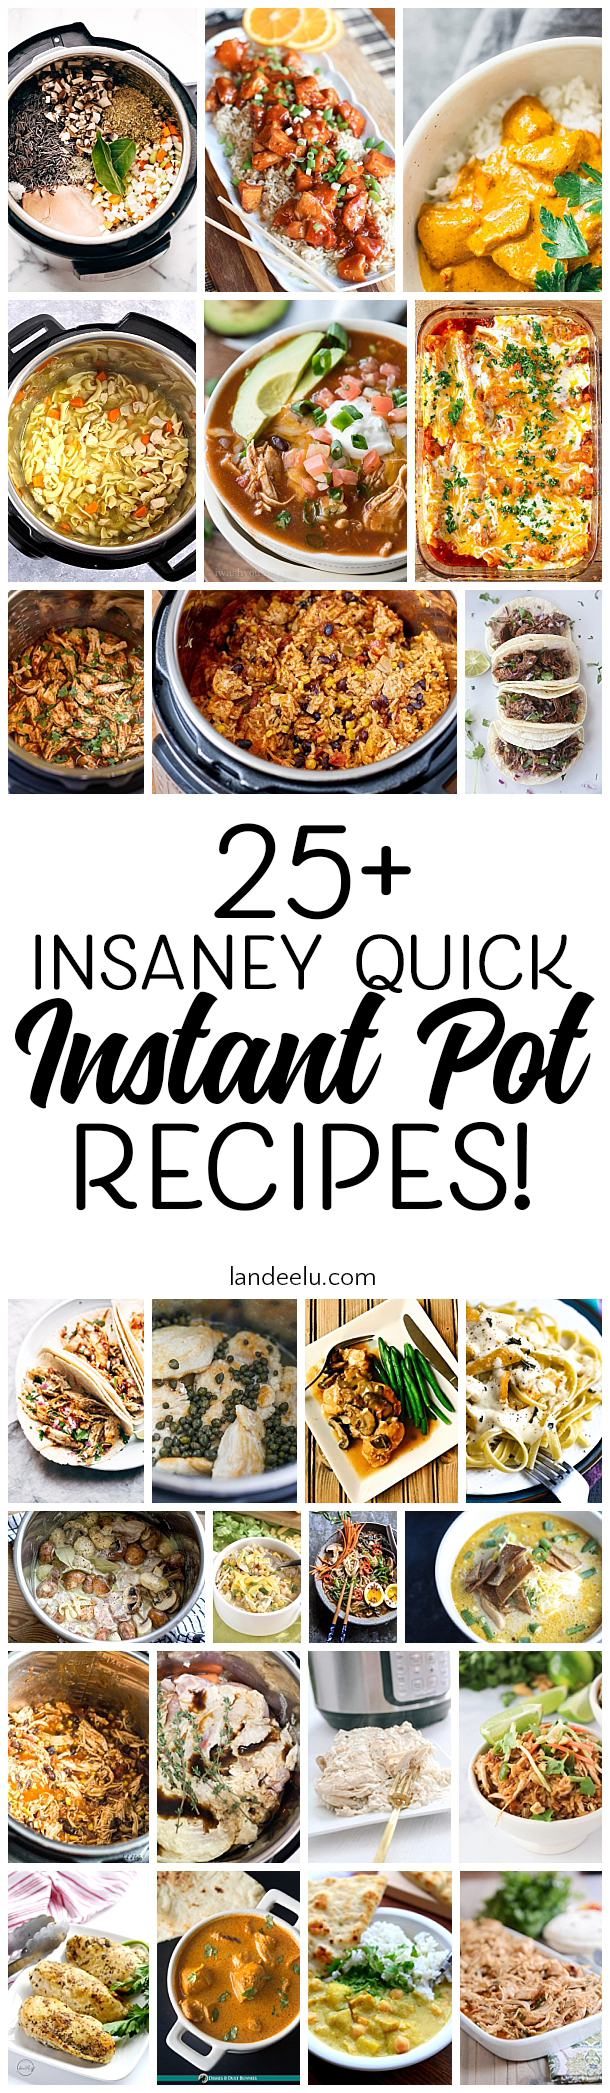 Over 25 awesome and quick instant pot recipes you'll want to try!